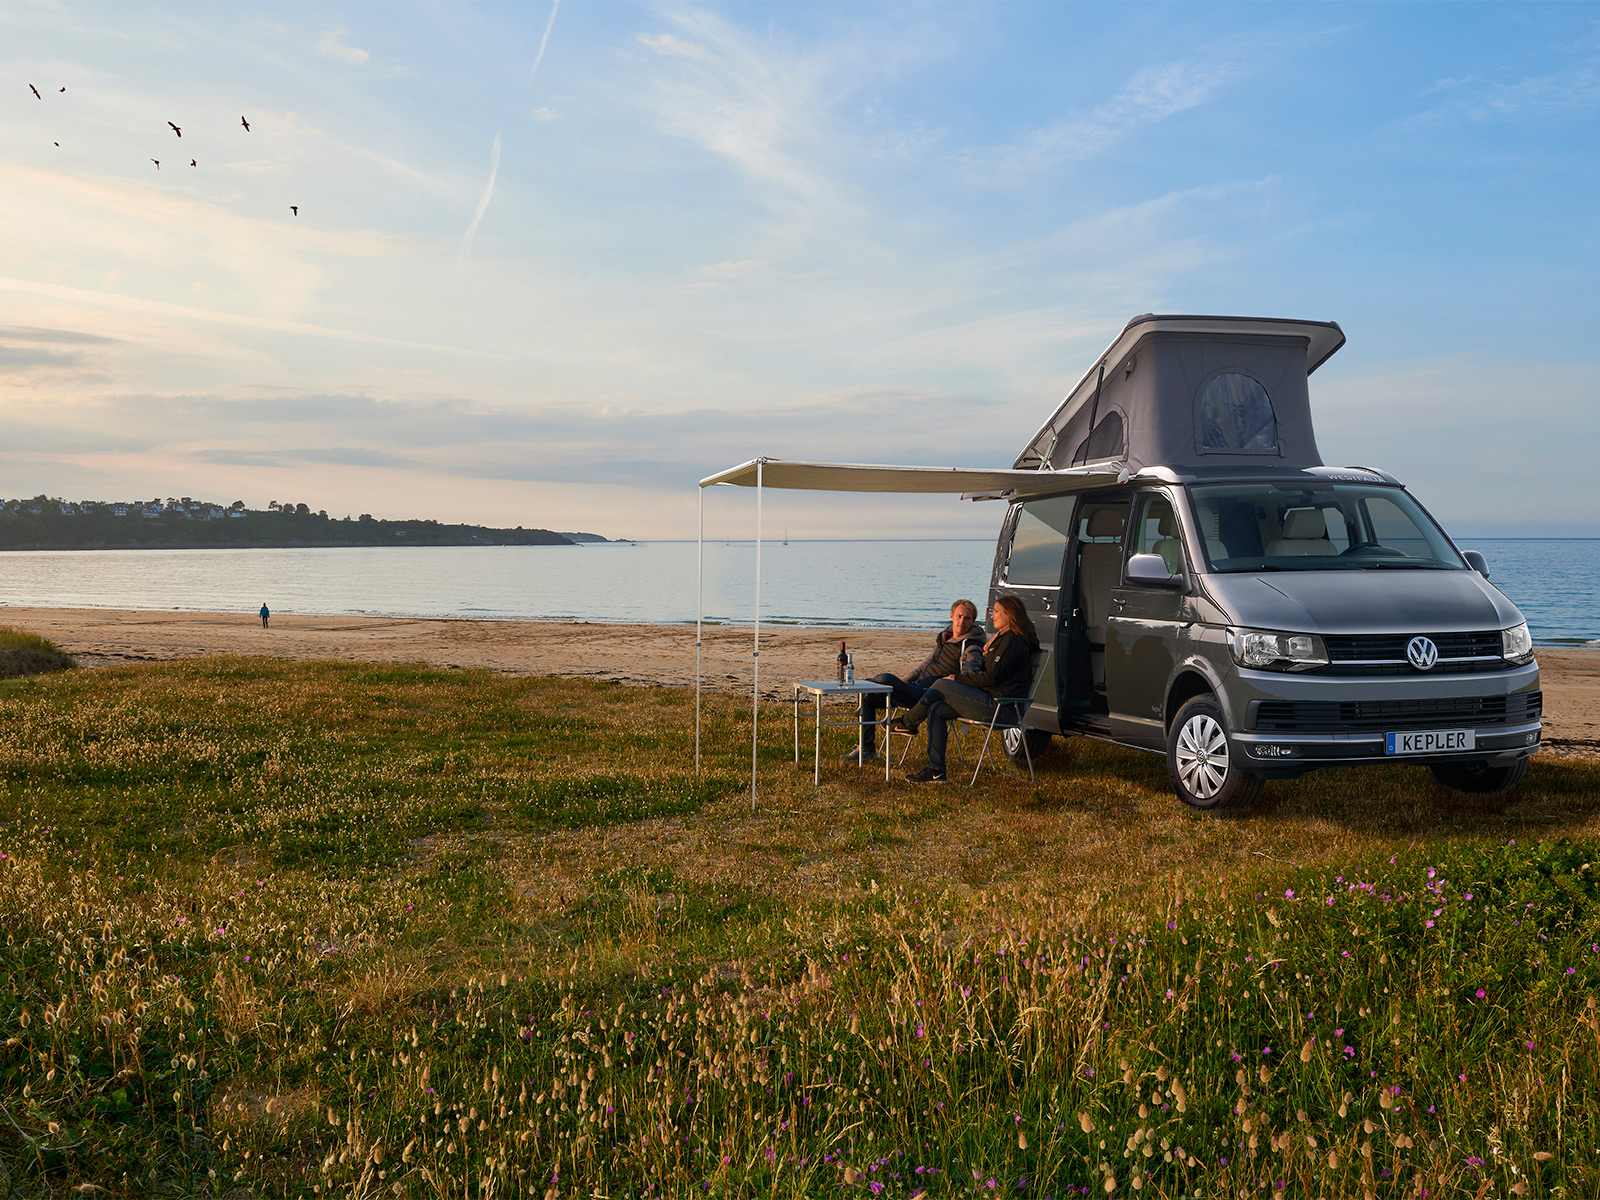 K6 camper on location by Hahn Media